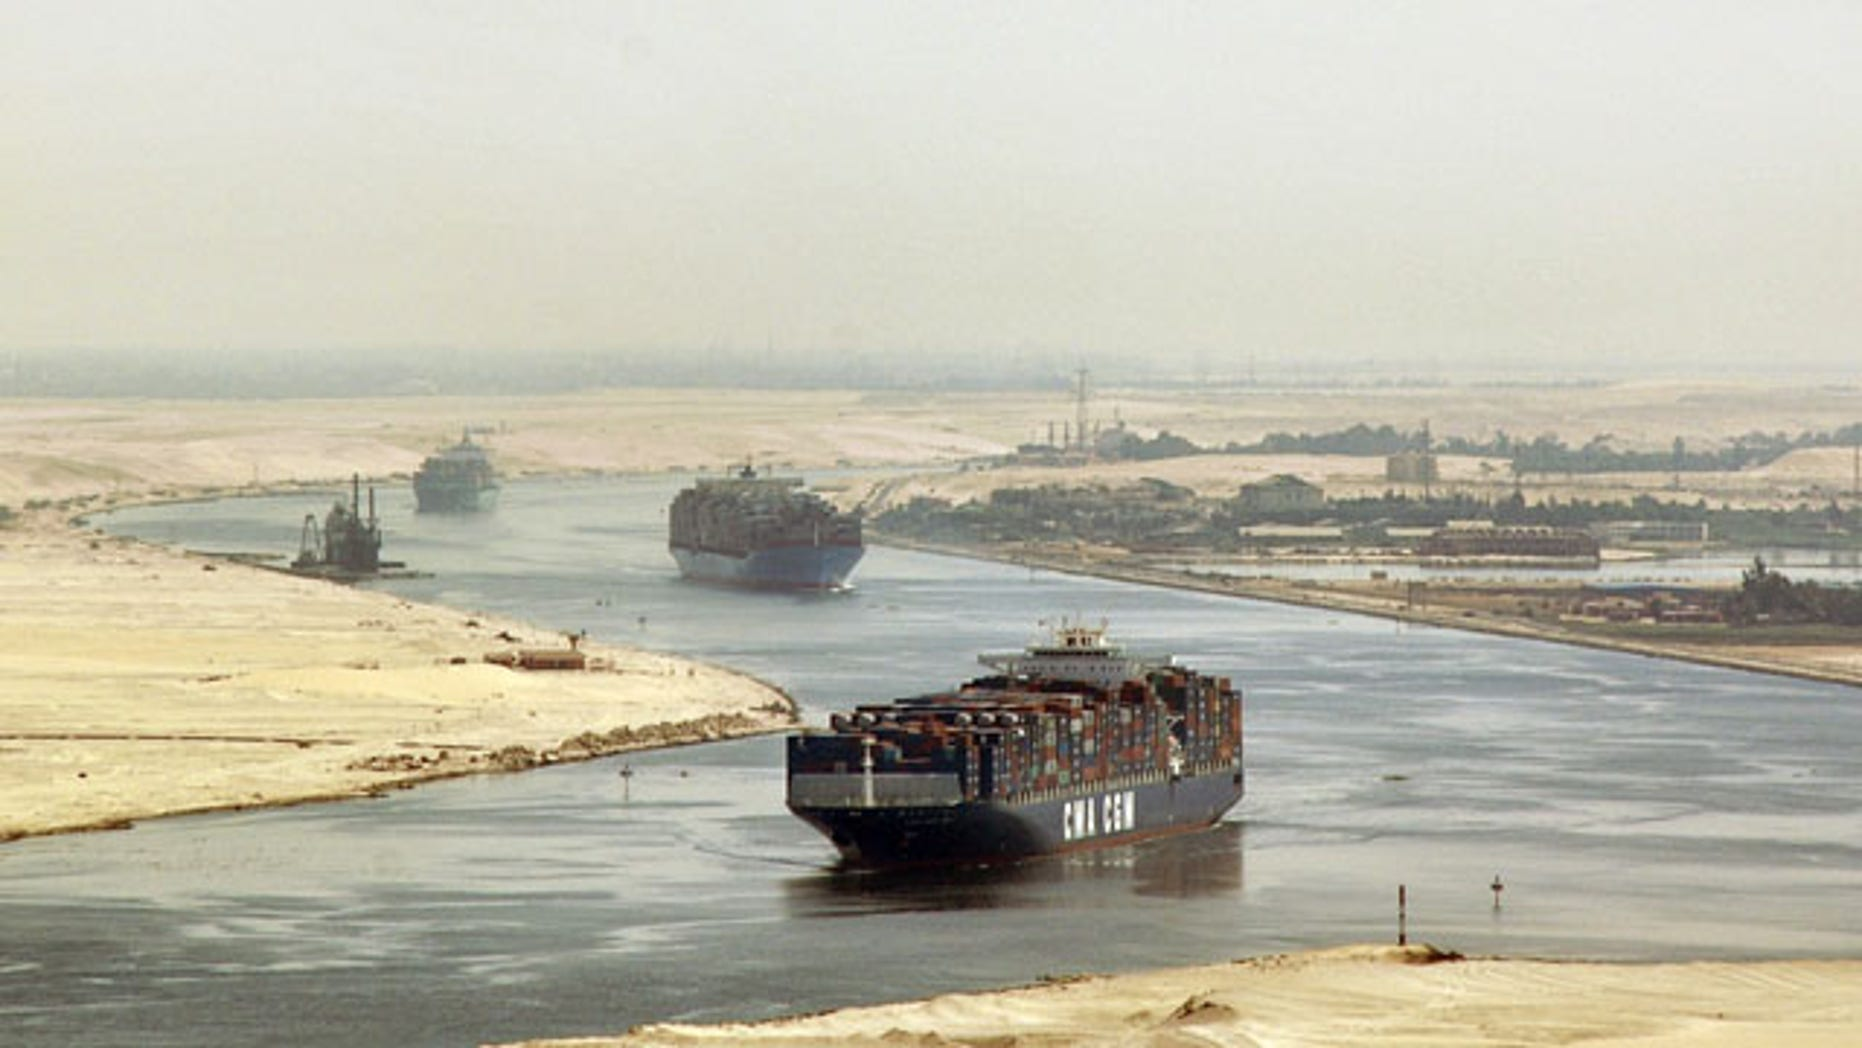 In this Sept. 21, 2009 file photo, cargo ships sail through the Suez Canal, seen from a helicopter, near Ismailia, Egypt. Egypt has agreed to allow two Iranian naval vessels to transit the Suez Canal to the Mediterranean.